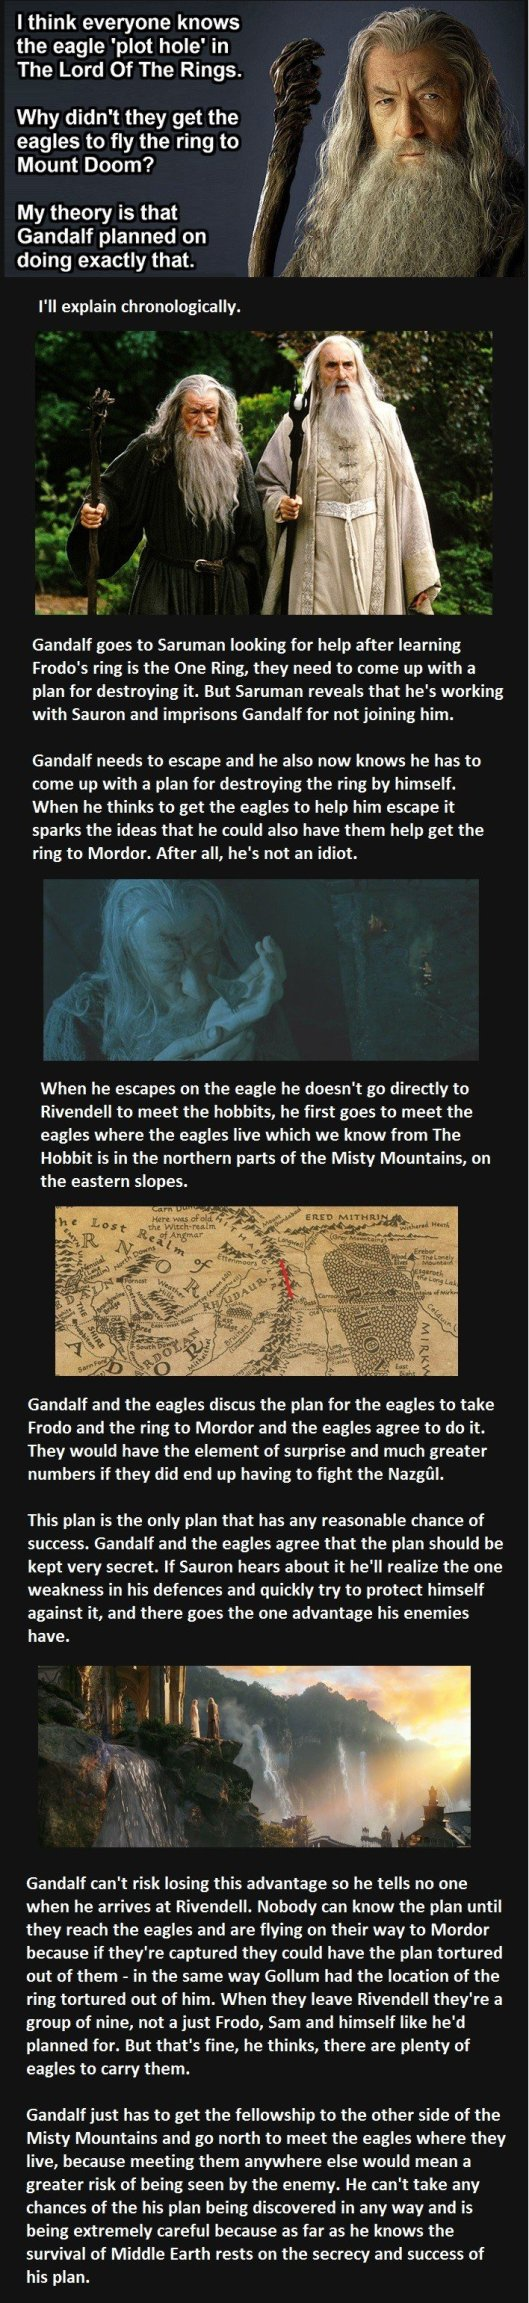 Lord of the Rings Eagles 1